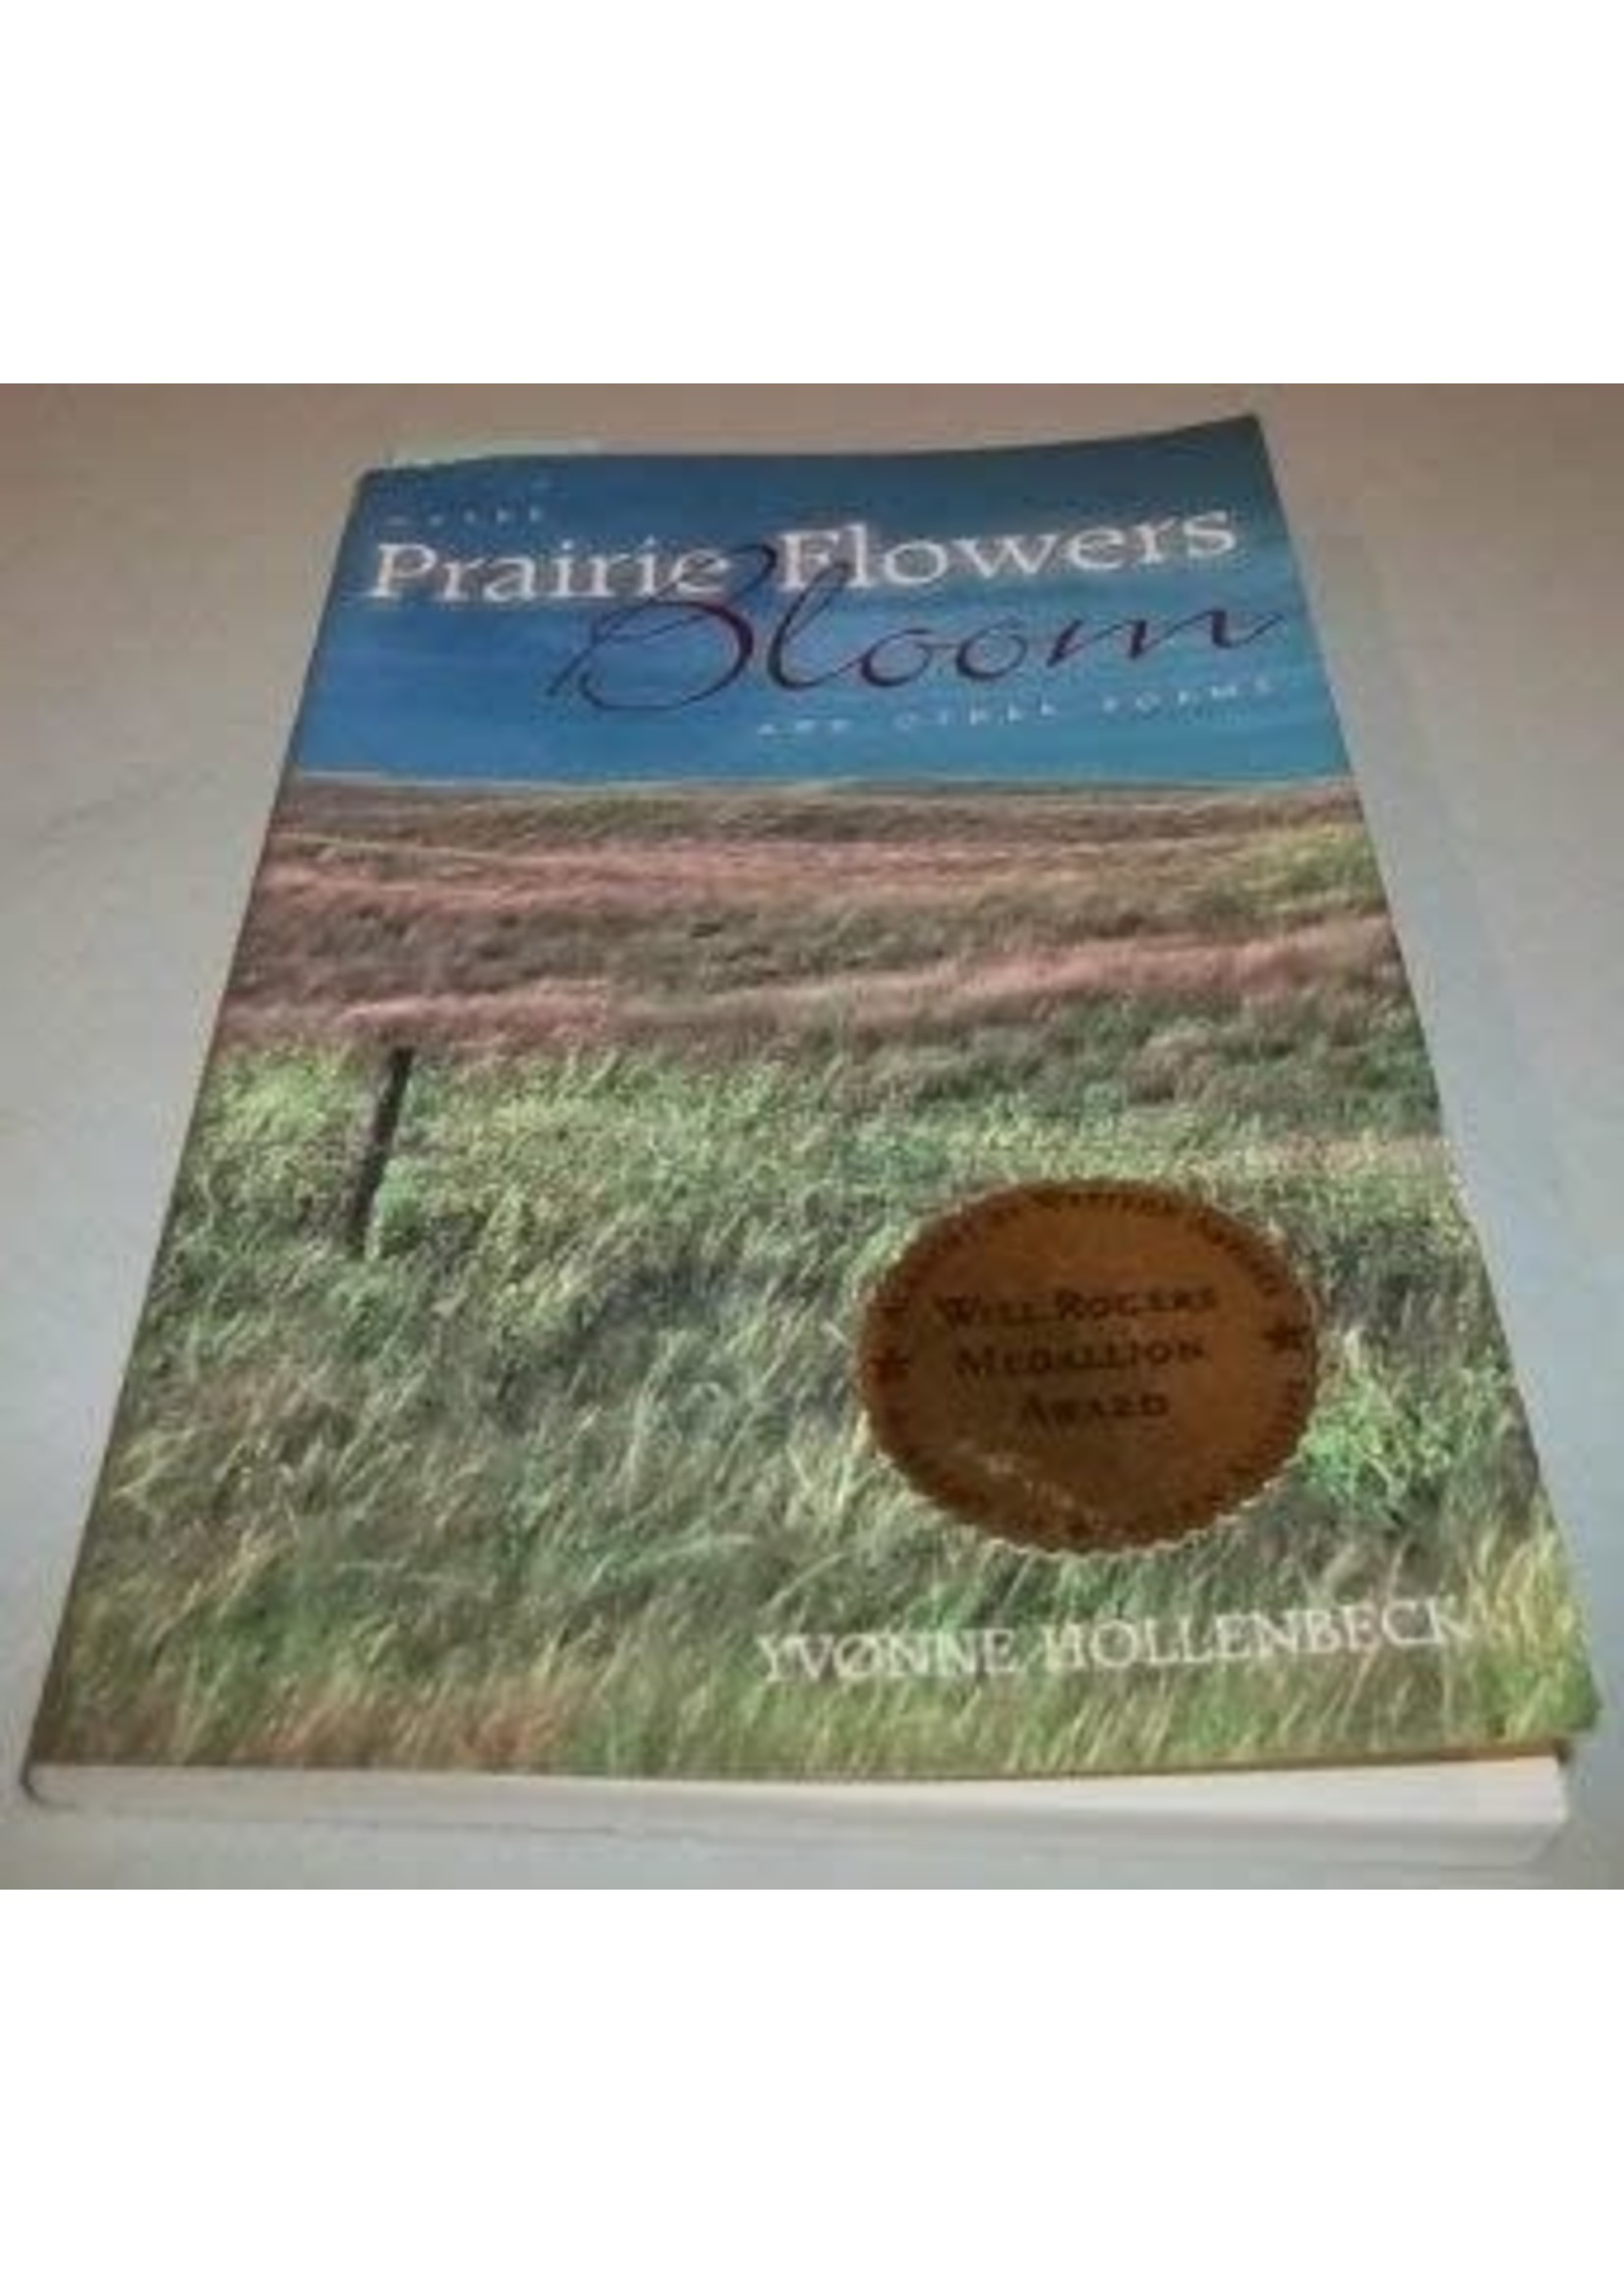 Where Prairie Flowers Bloom and other Poems by Yvonne Hollenbeck